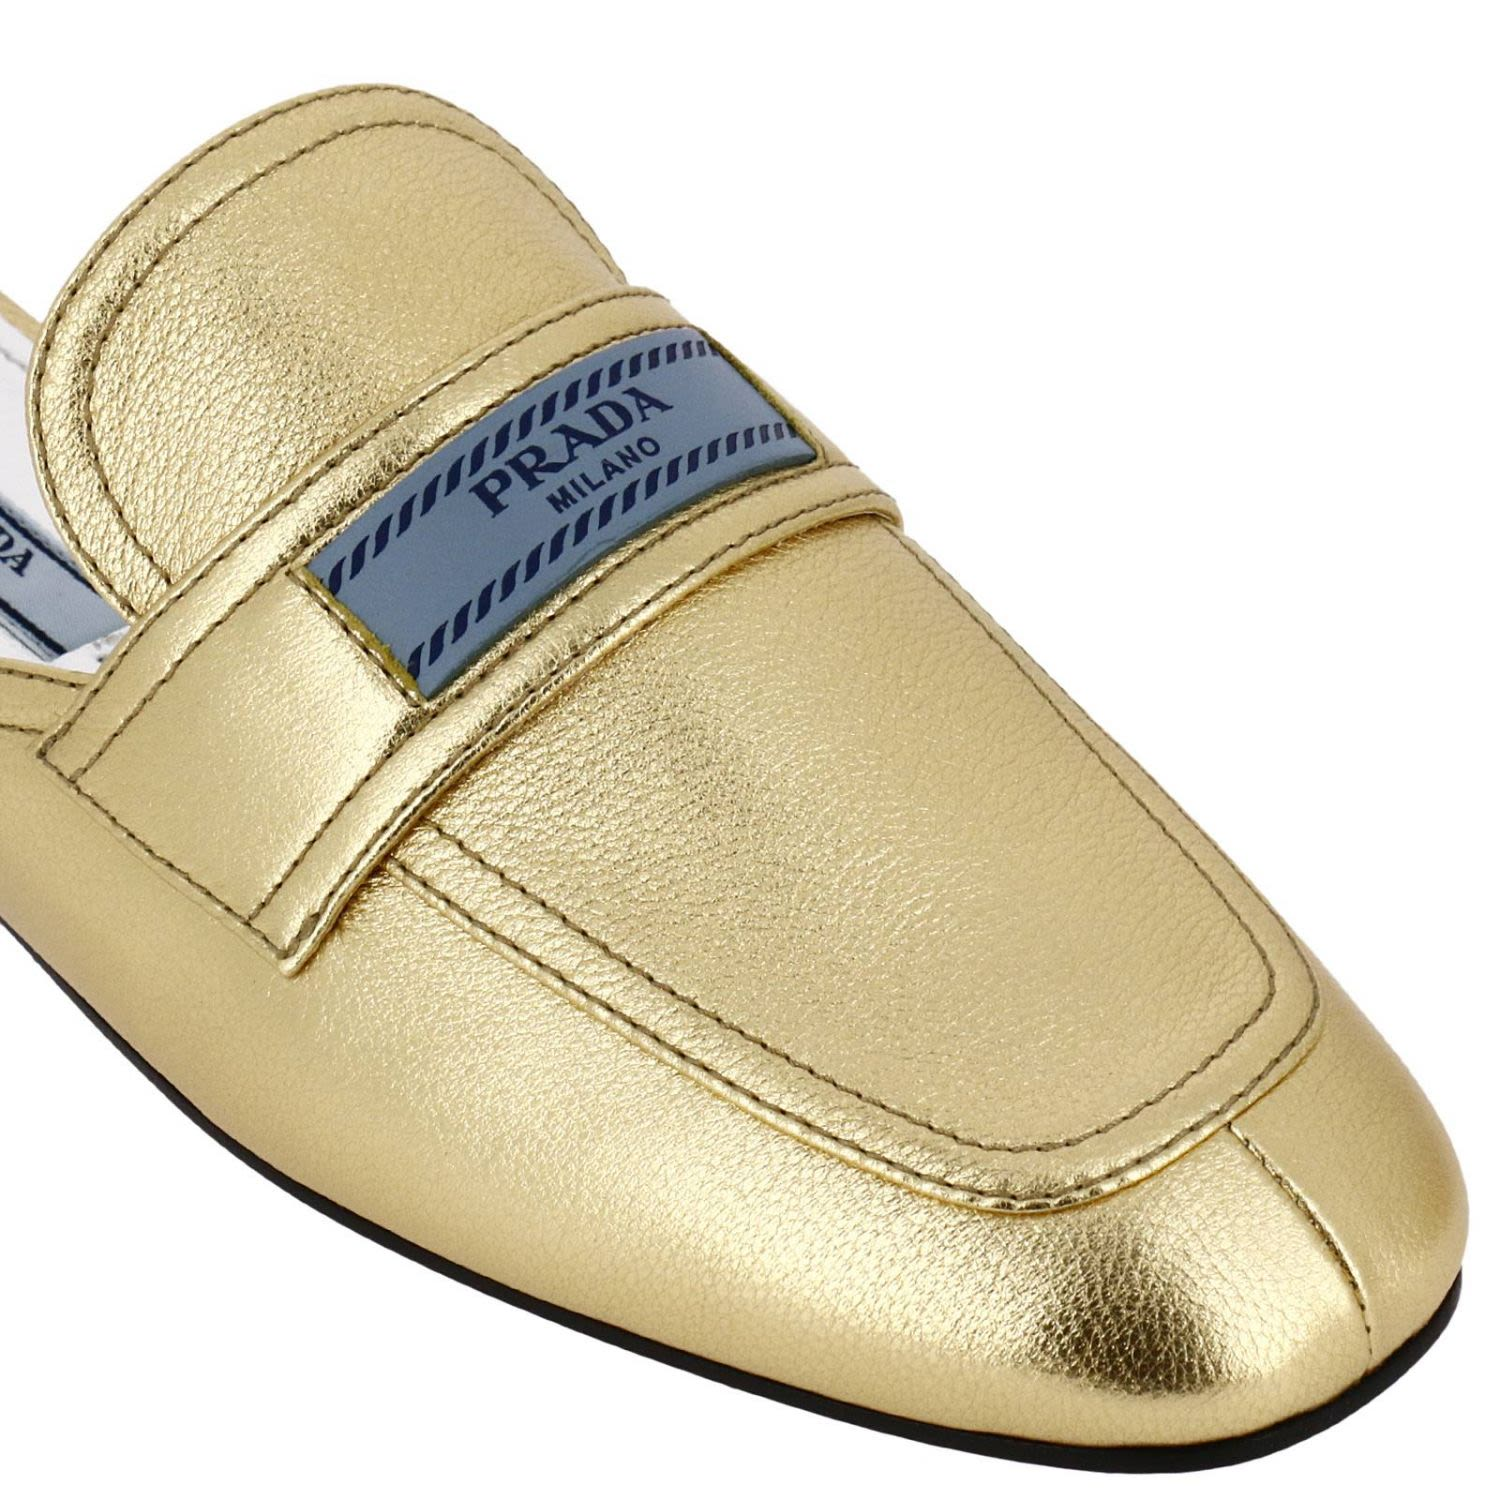 ... Prada Ballet Flats Shoes Women Prada - gold ... b3d7899bde